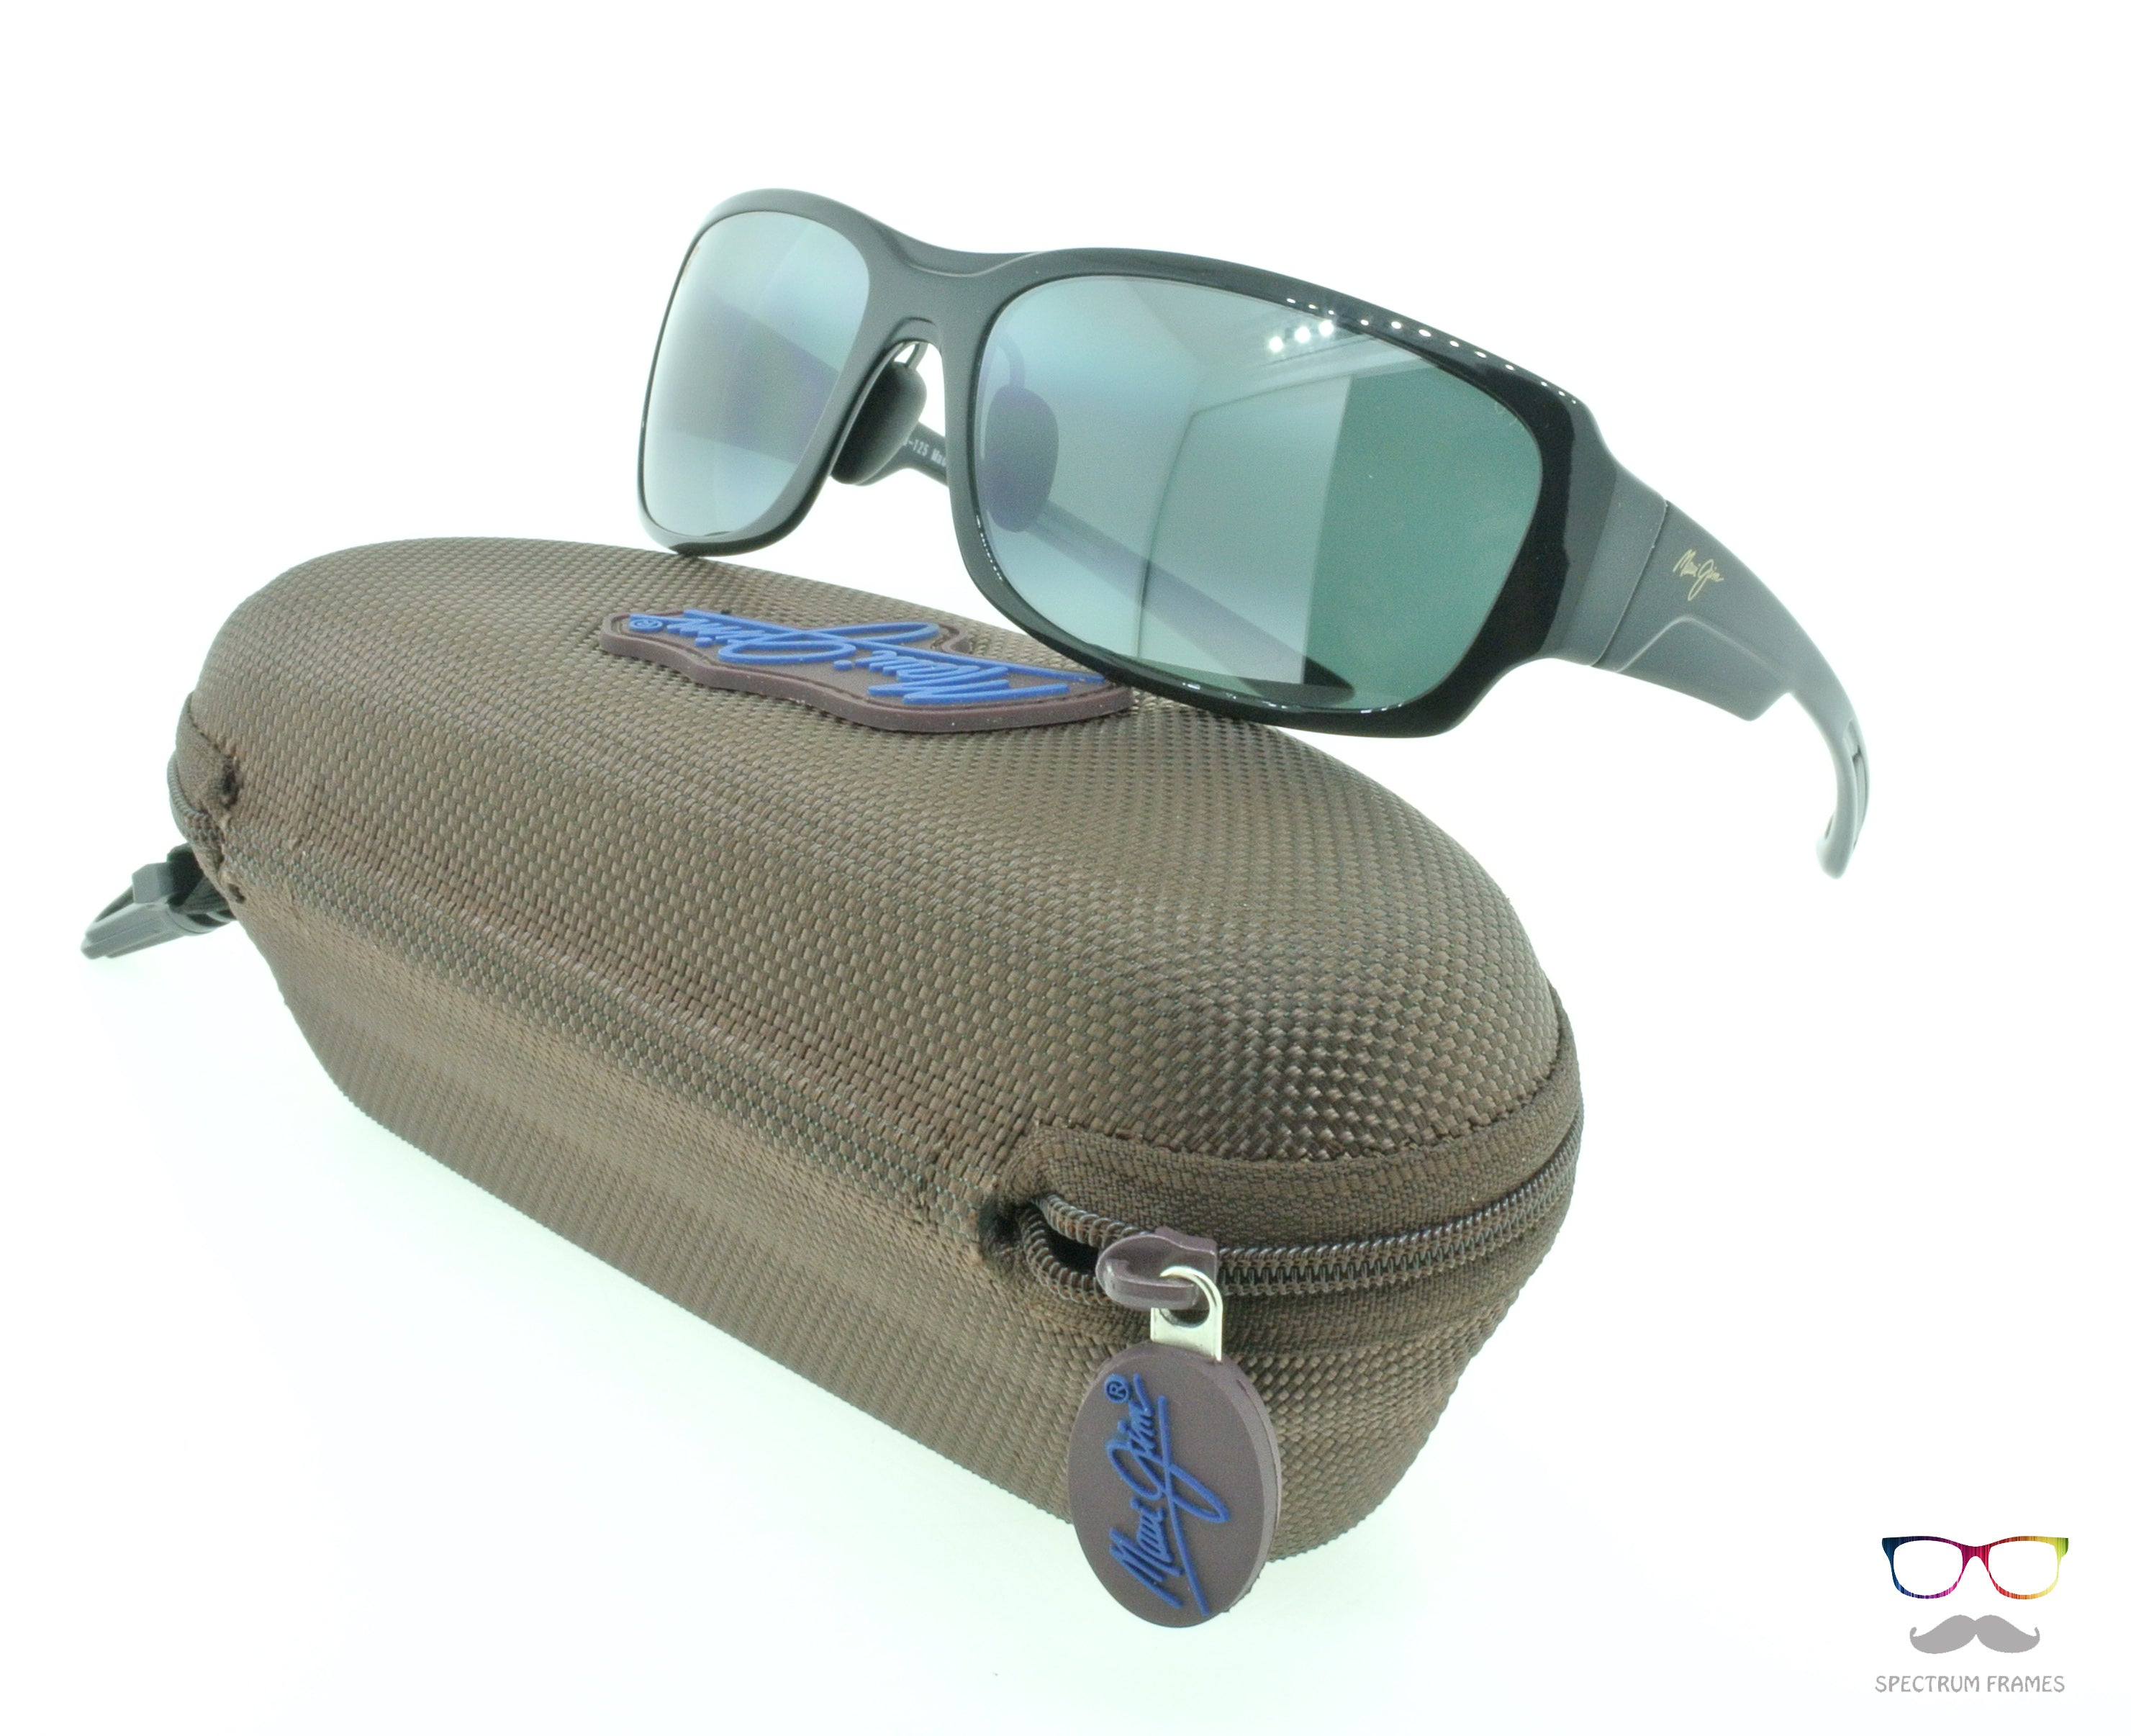 0bfd5fe7315 Maui Jim Sunglasses Bamboo Forest 415-02J Black Fade   Neutral Grey  Polarized Lenses